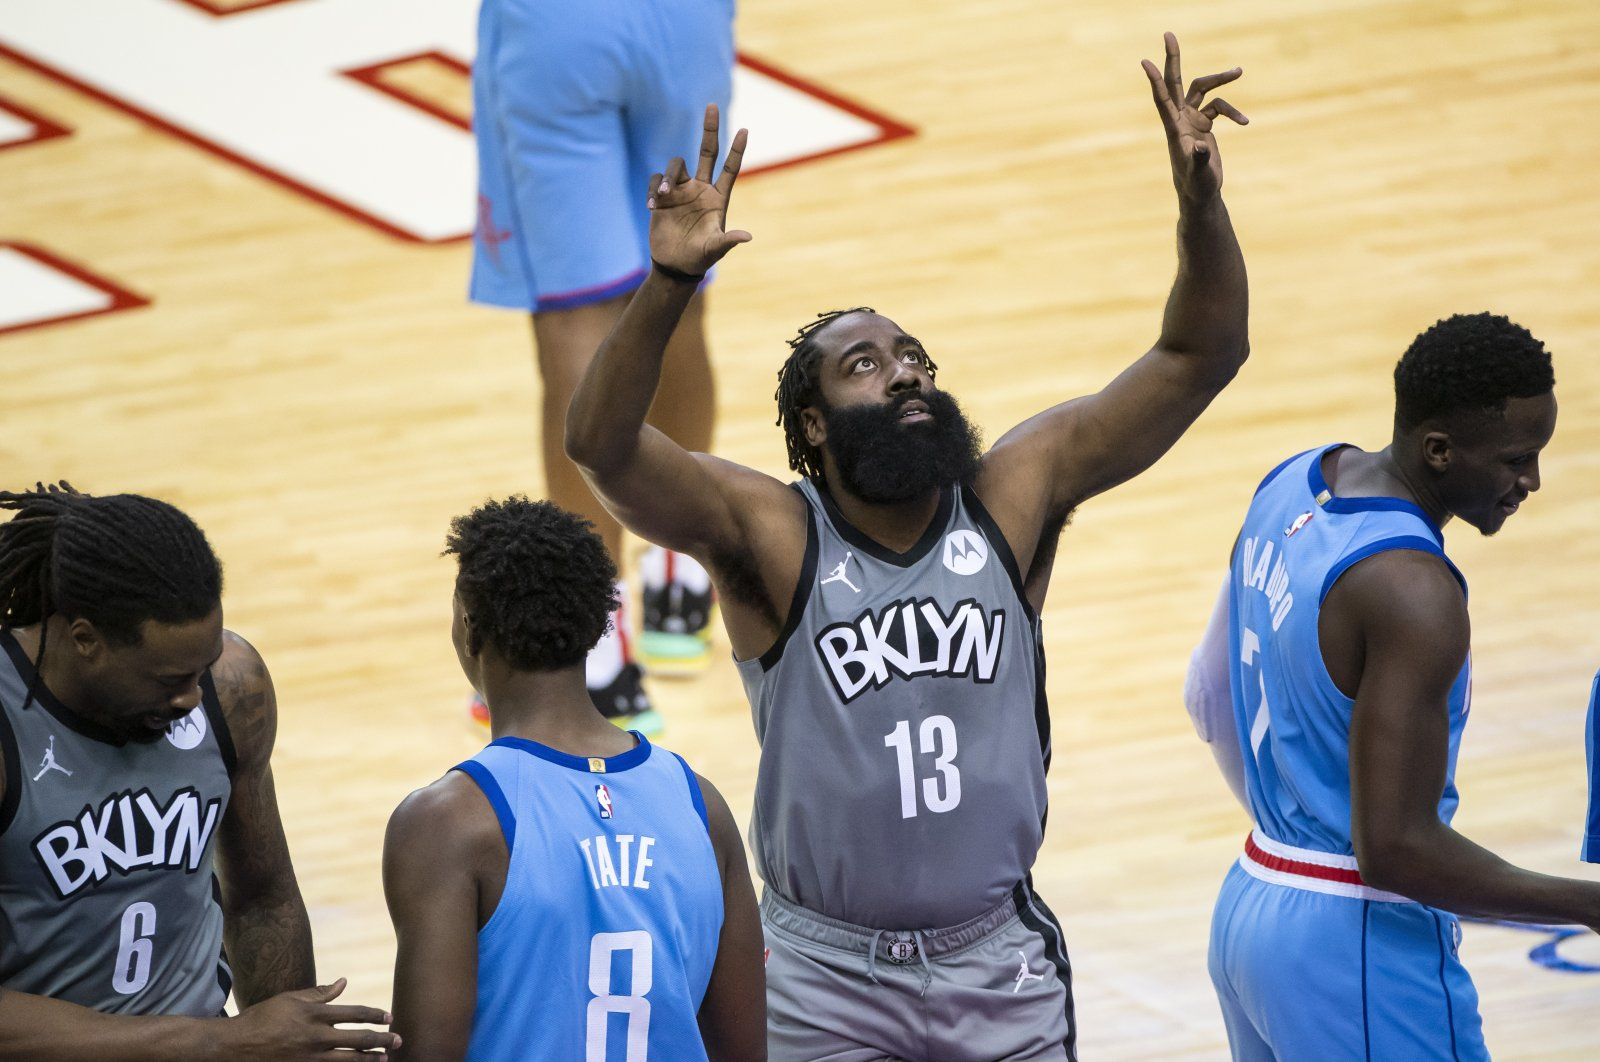 Brooklyn Nets guard James Harden (C) prepares to start in an NBA game against the Houston Rockets, in Houston, Texas, March 3, 2021. (AP Photo)